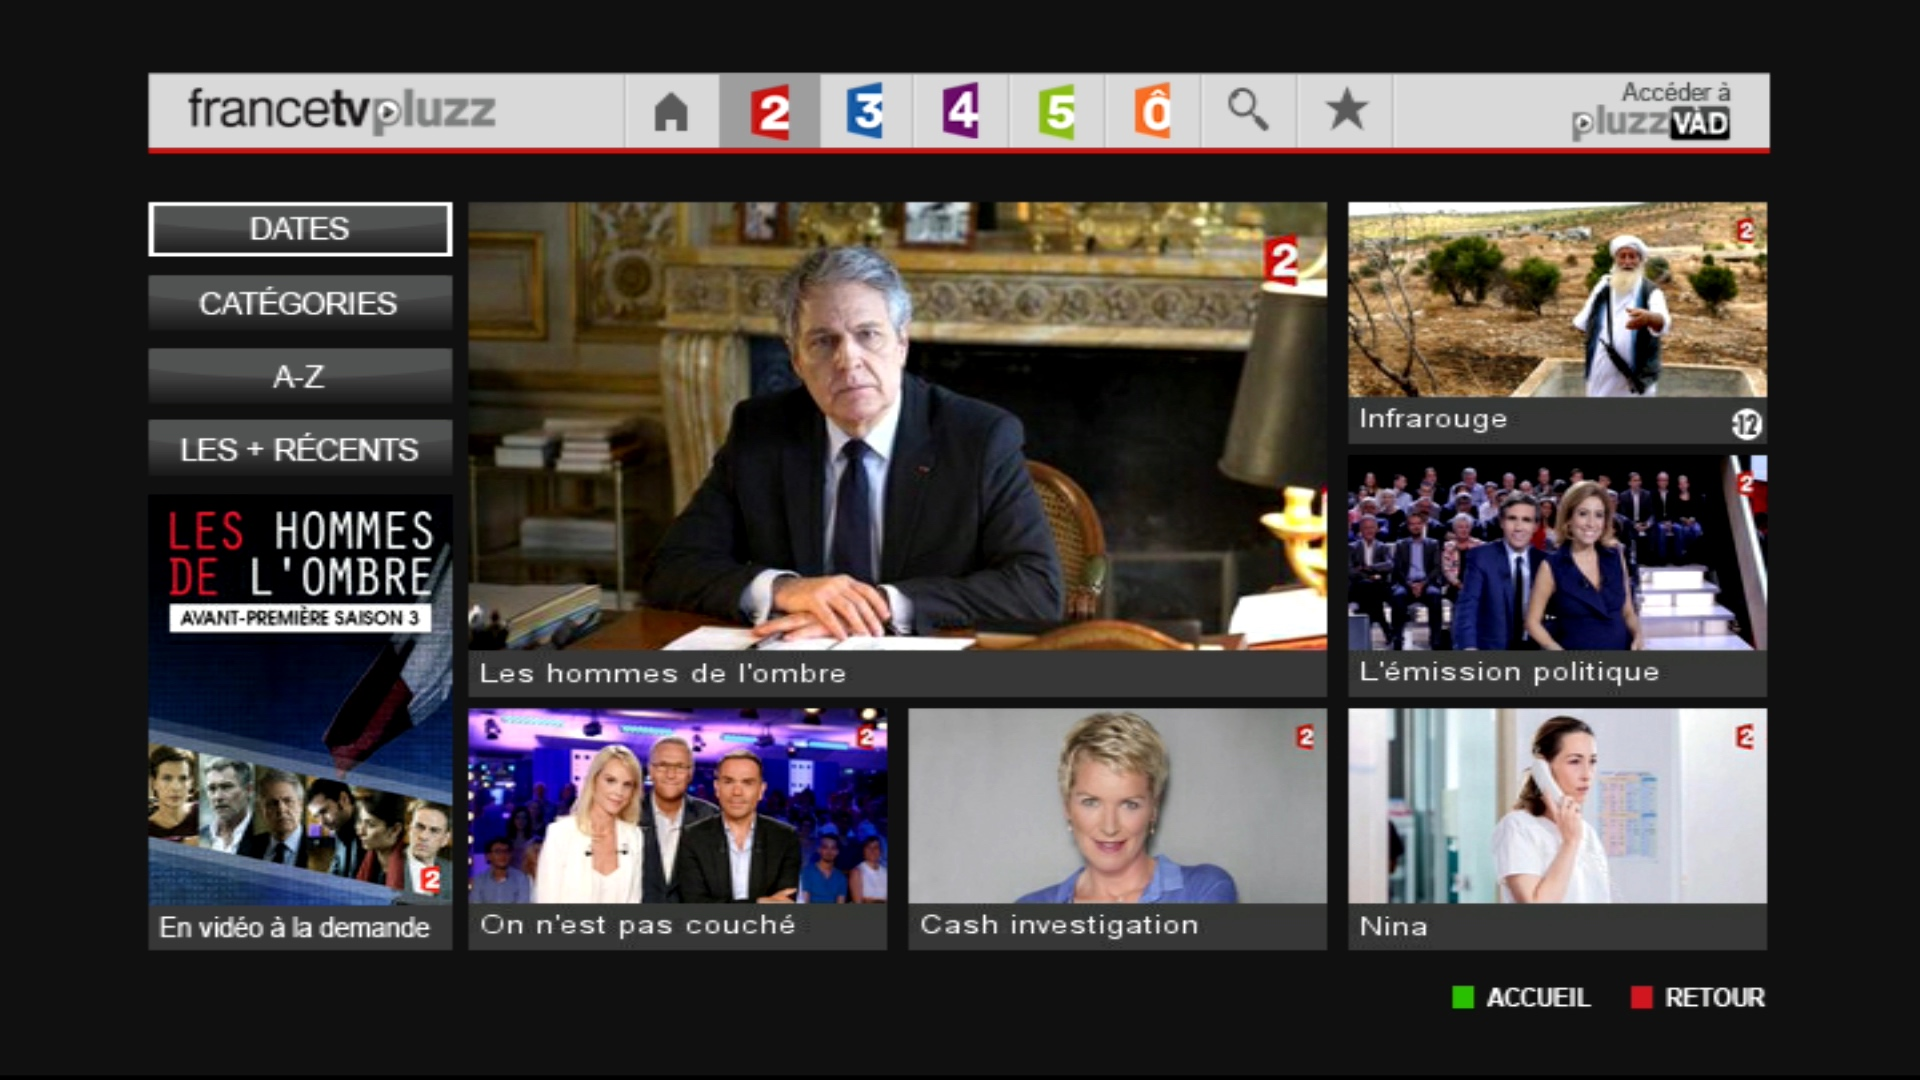 francetv-pluzz-freebox-replay